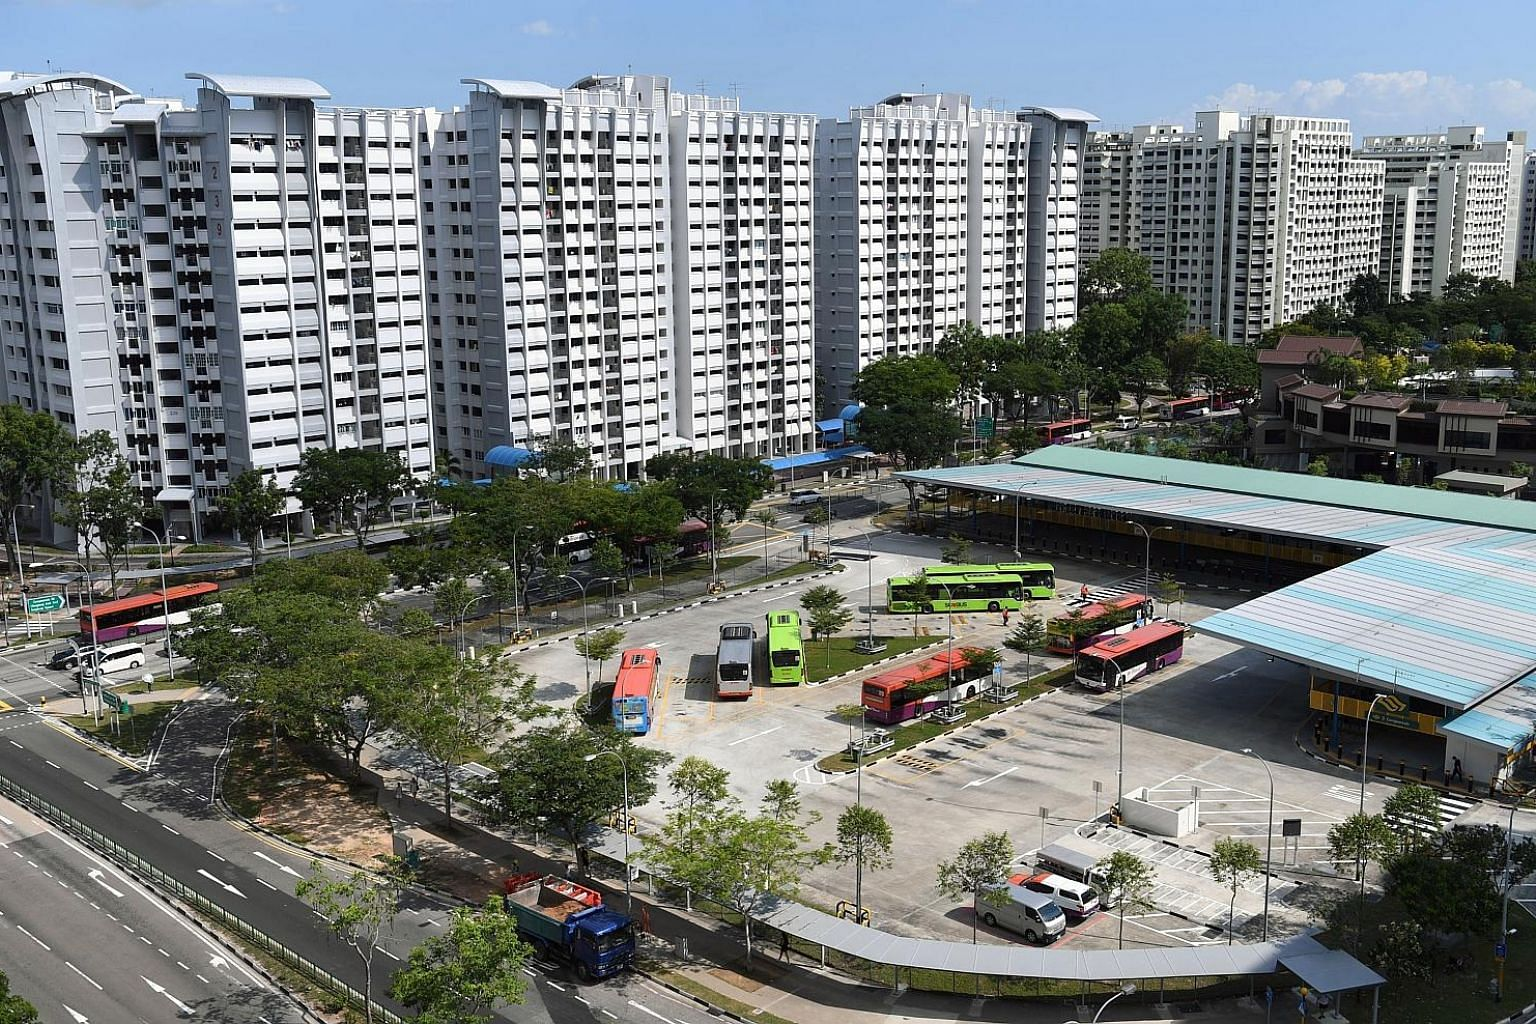 The new Sengkang GRC, which will have 117,546 voters, comprises parts of the existing Pasir Ris-Punggol GRC, as well as the single seat of Punggol East and parts of Sengkang West SMC. However, the GRC's slate of candidates has not yet been drawn up.